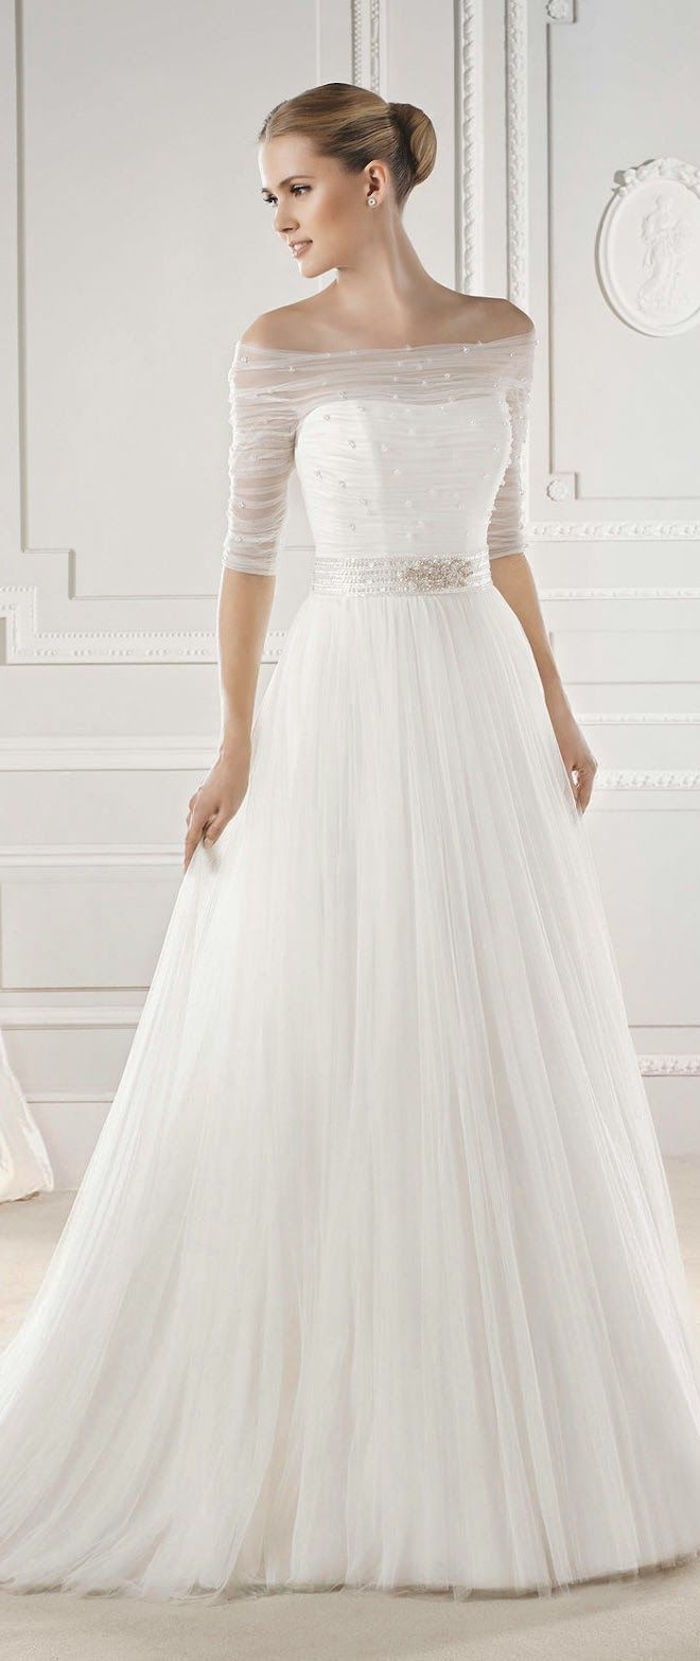 Best 25 simple wedding gowns ideas on pinterest simple for Wedding dress 30s style